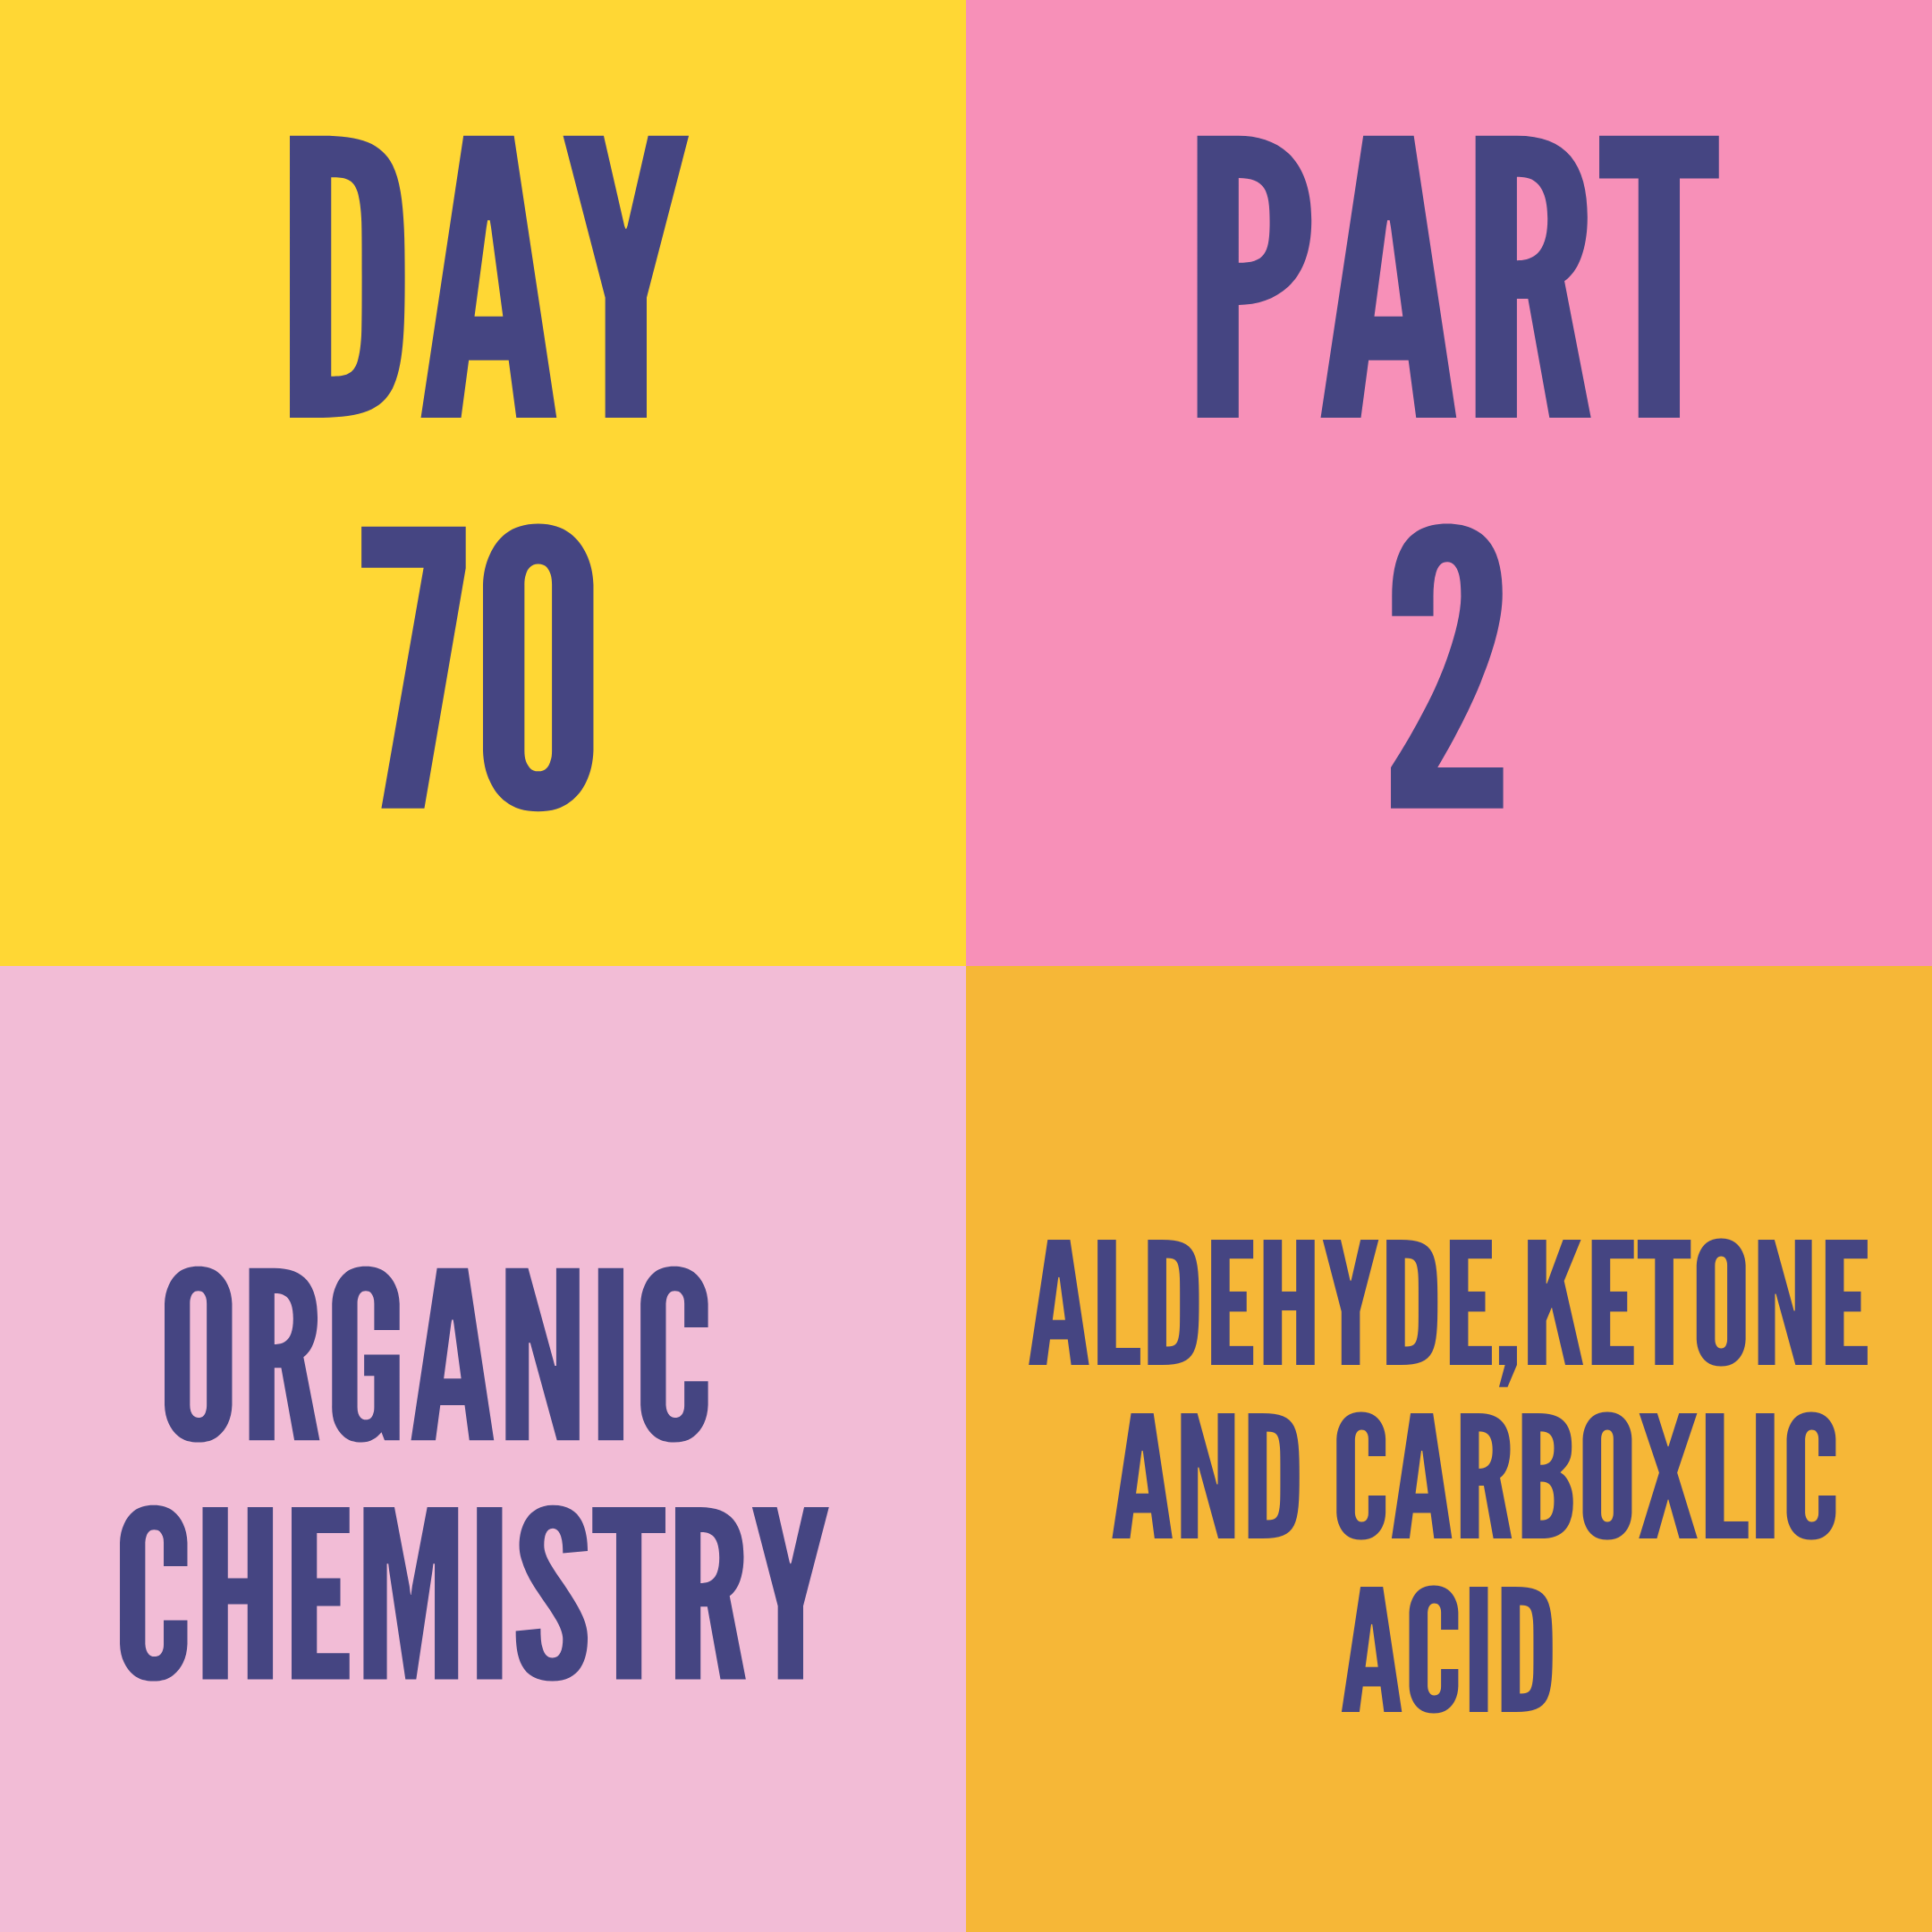 DAY-70 PART-2 ALDEHYDE,KETONE AND CARBOXLIC ACID